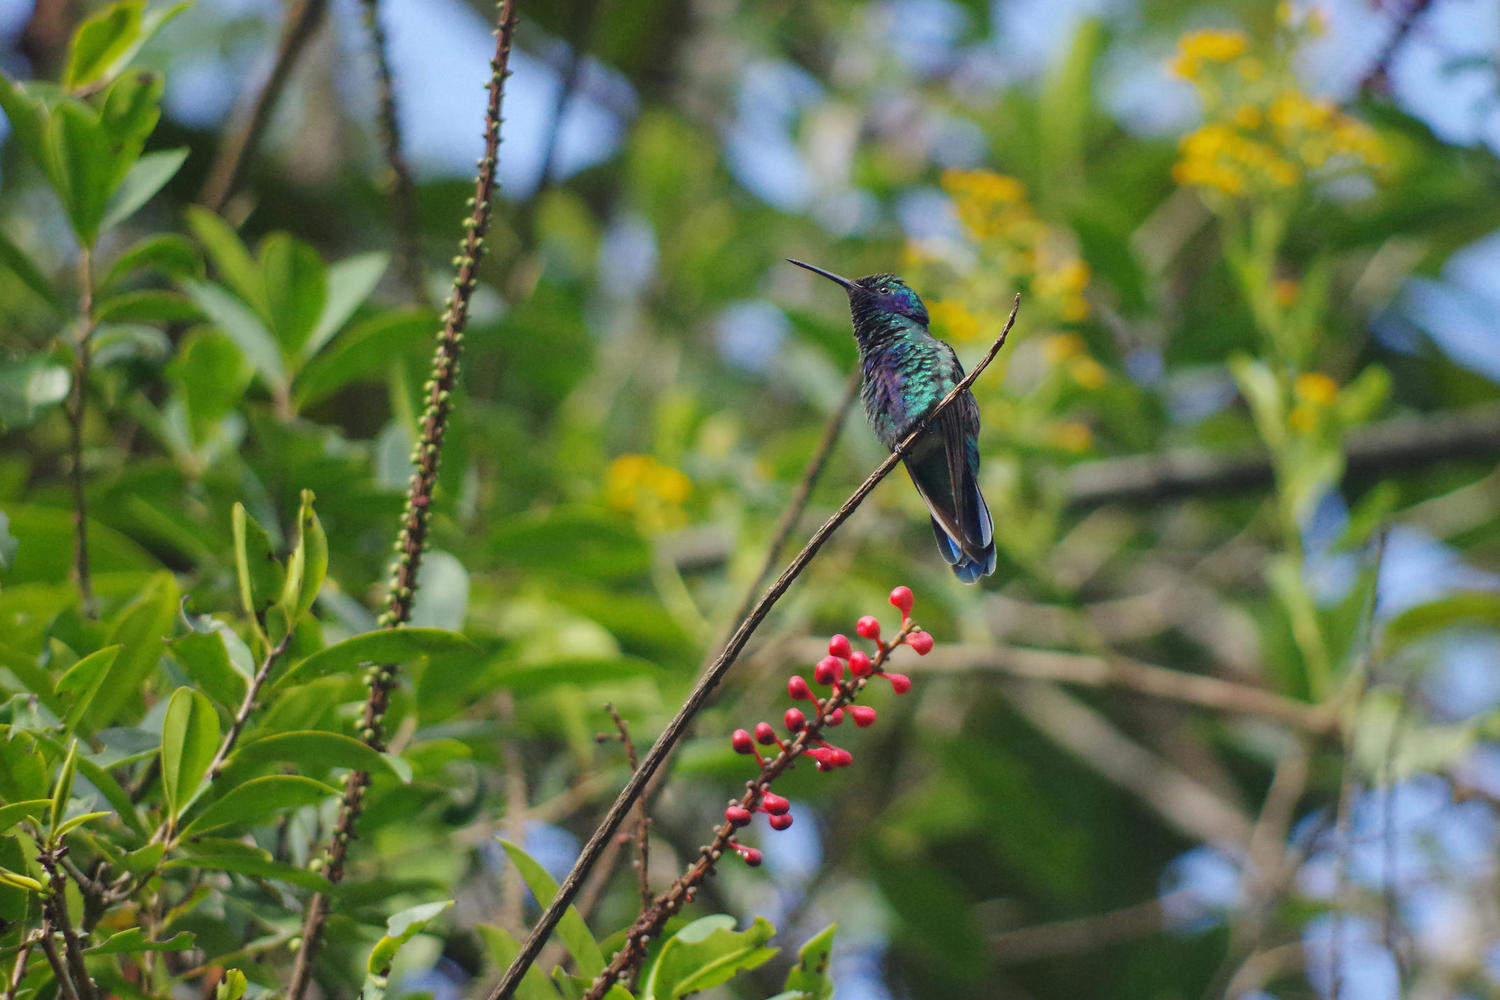 Hummingbirds have to compete surprisingly hard to get their nectar in Mindo